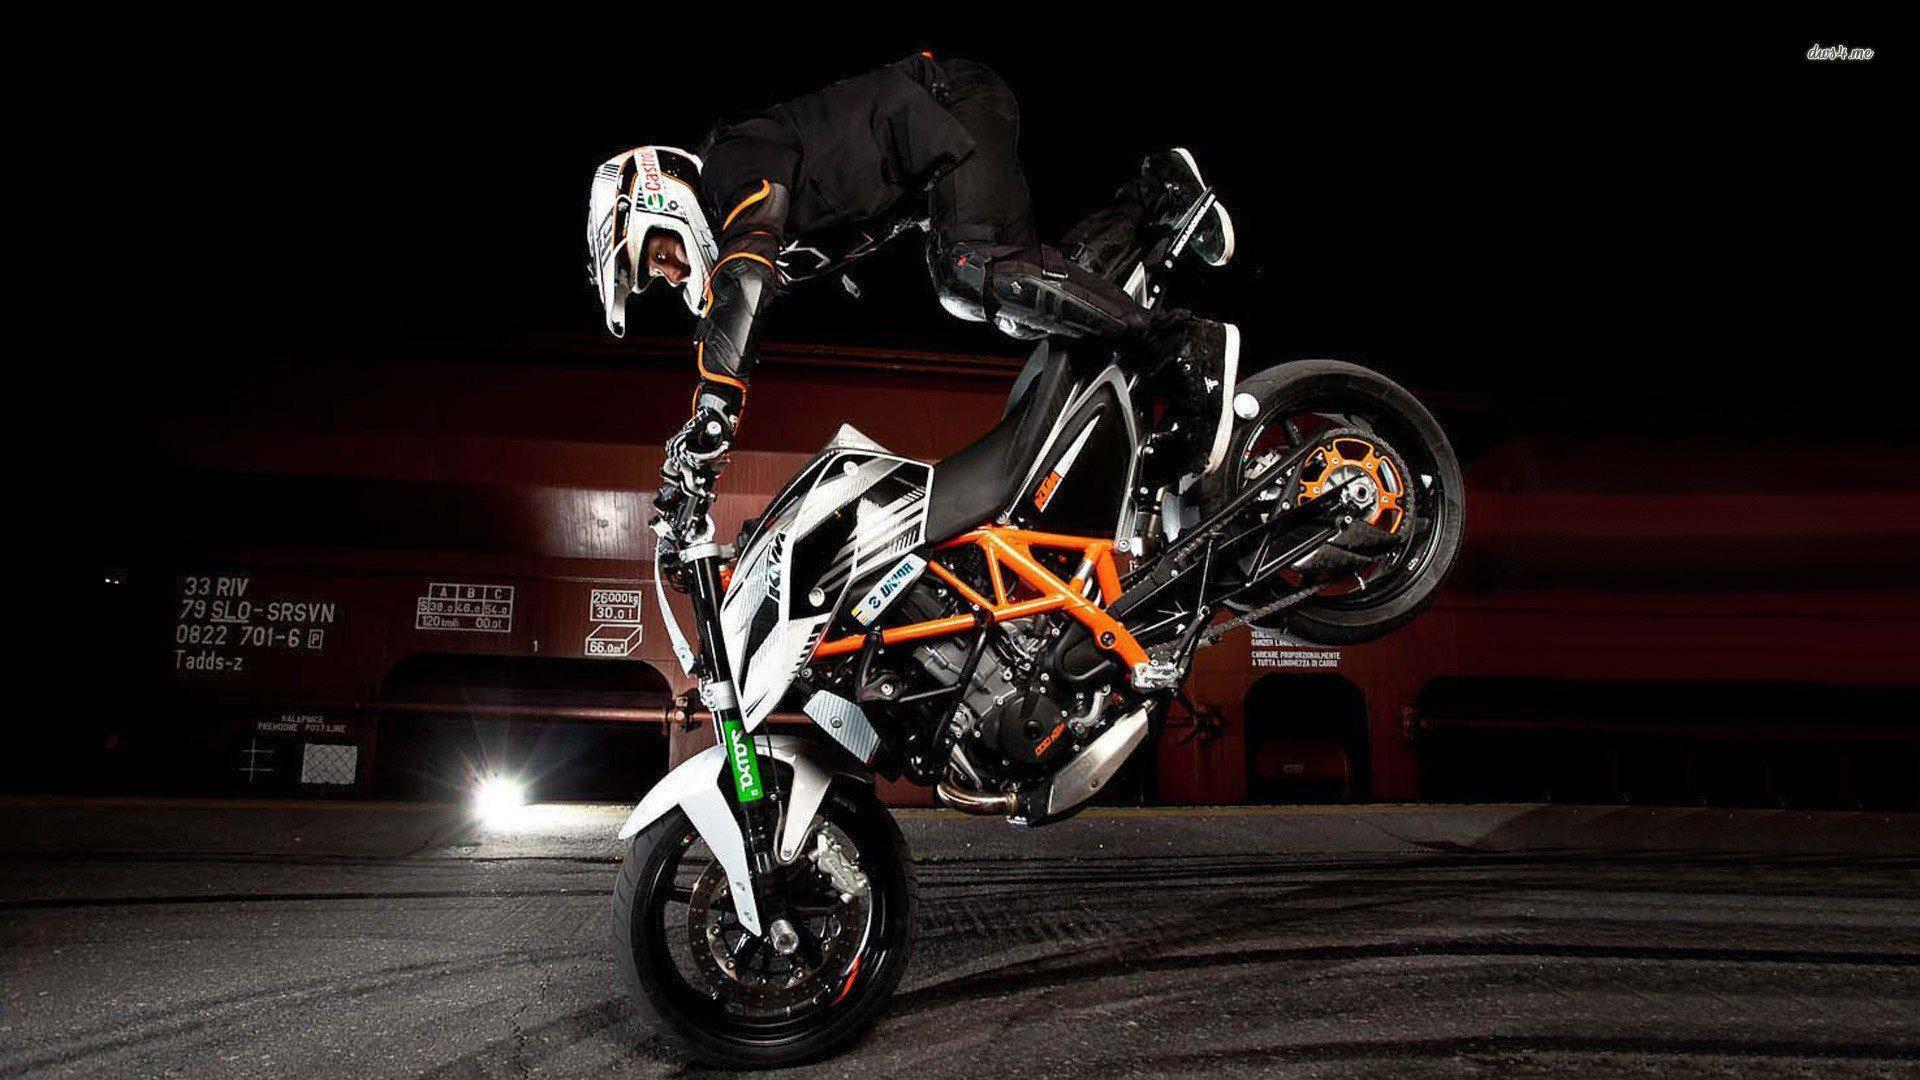 Ktm Duke Bike Hd Image Download